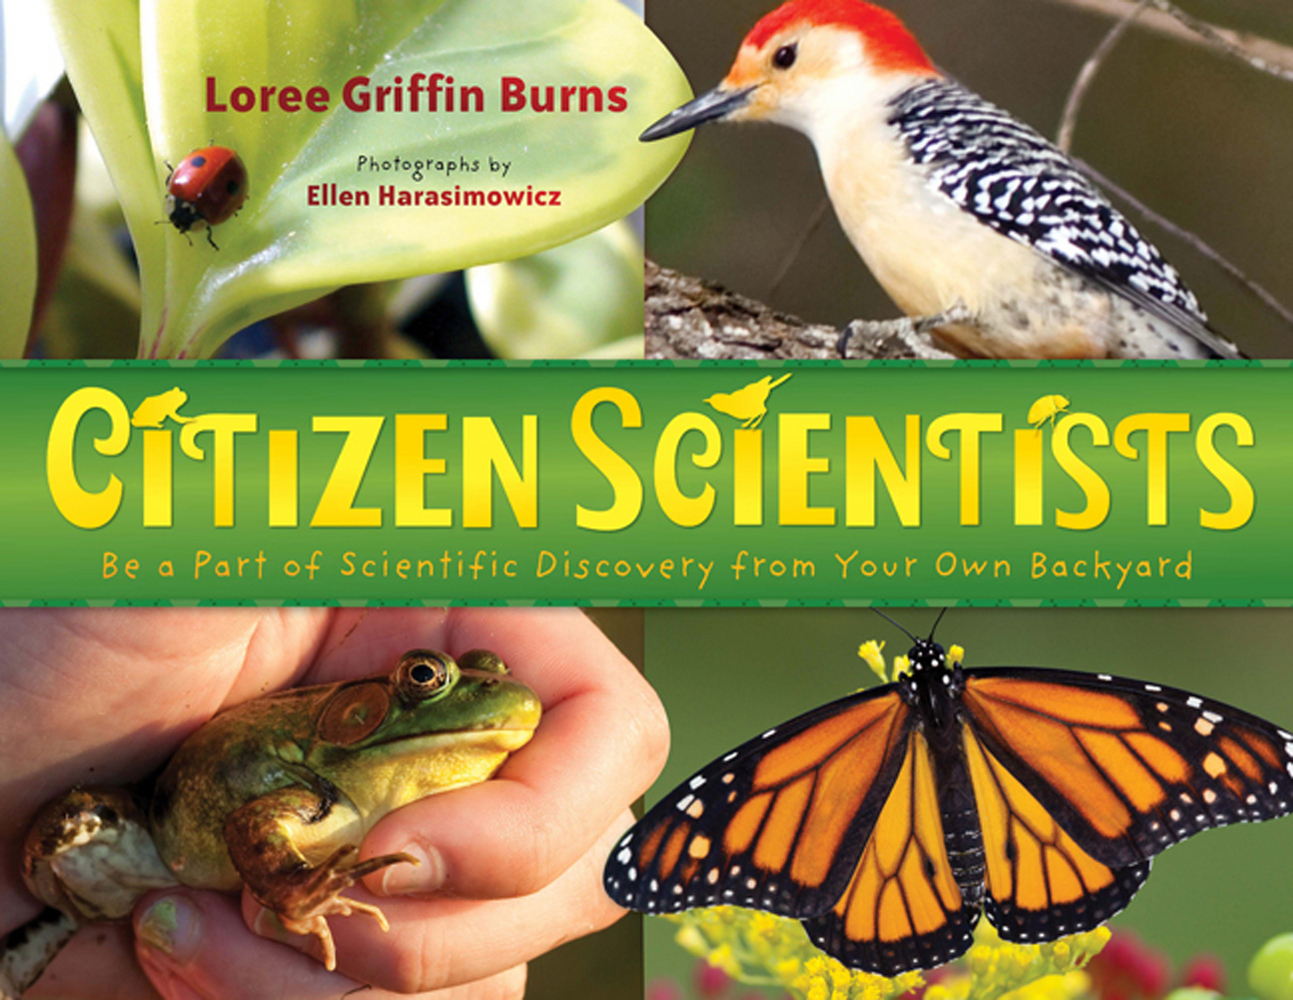 Citizen Scientists